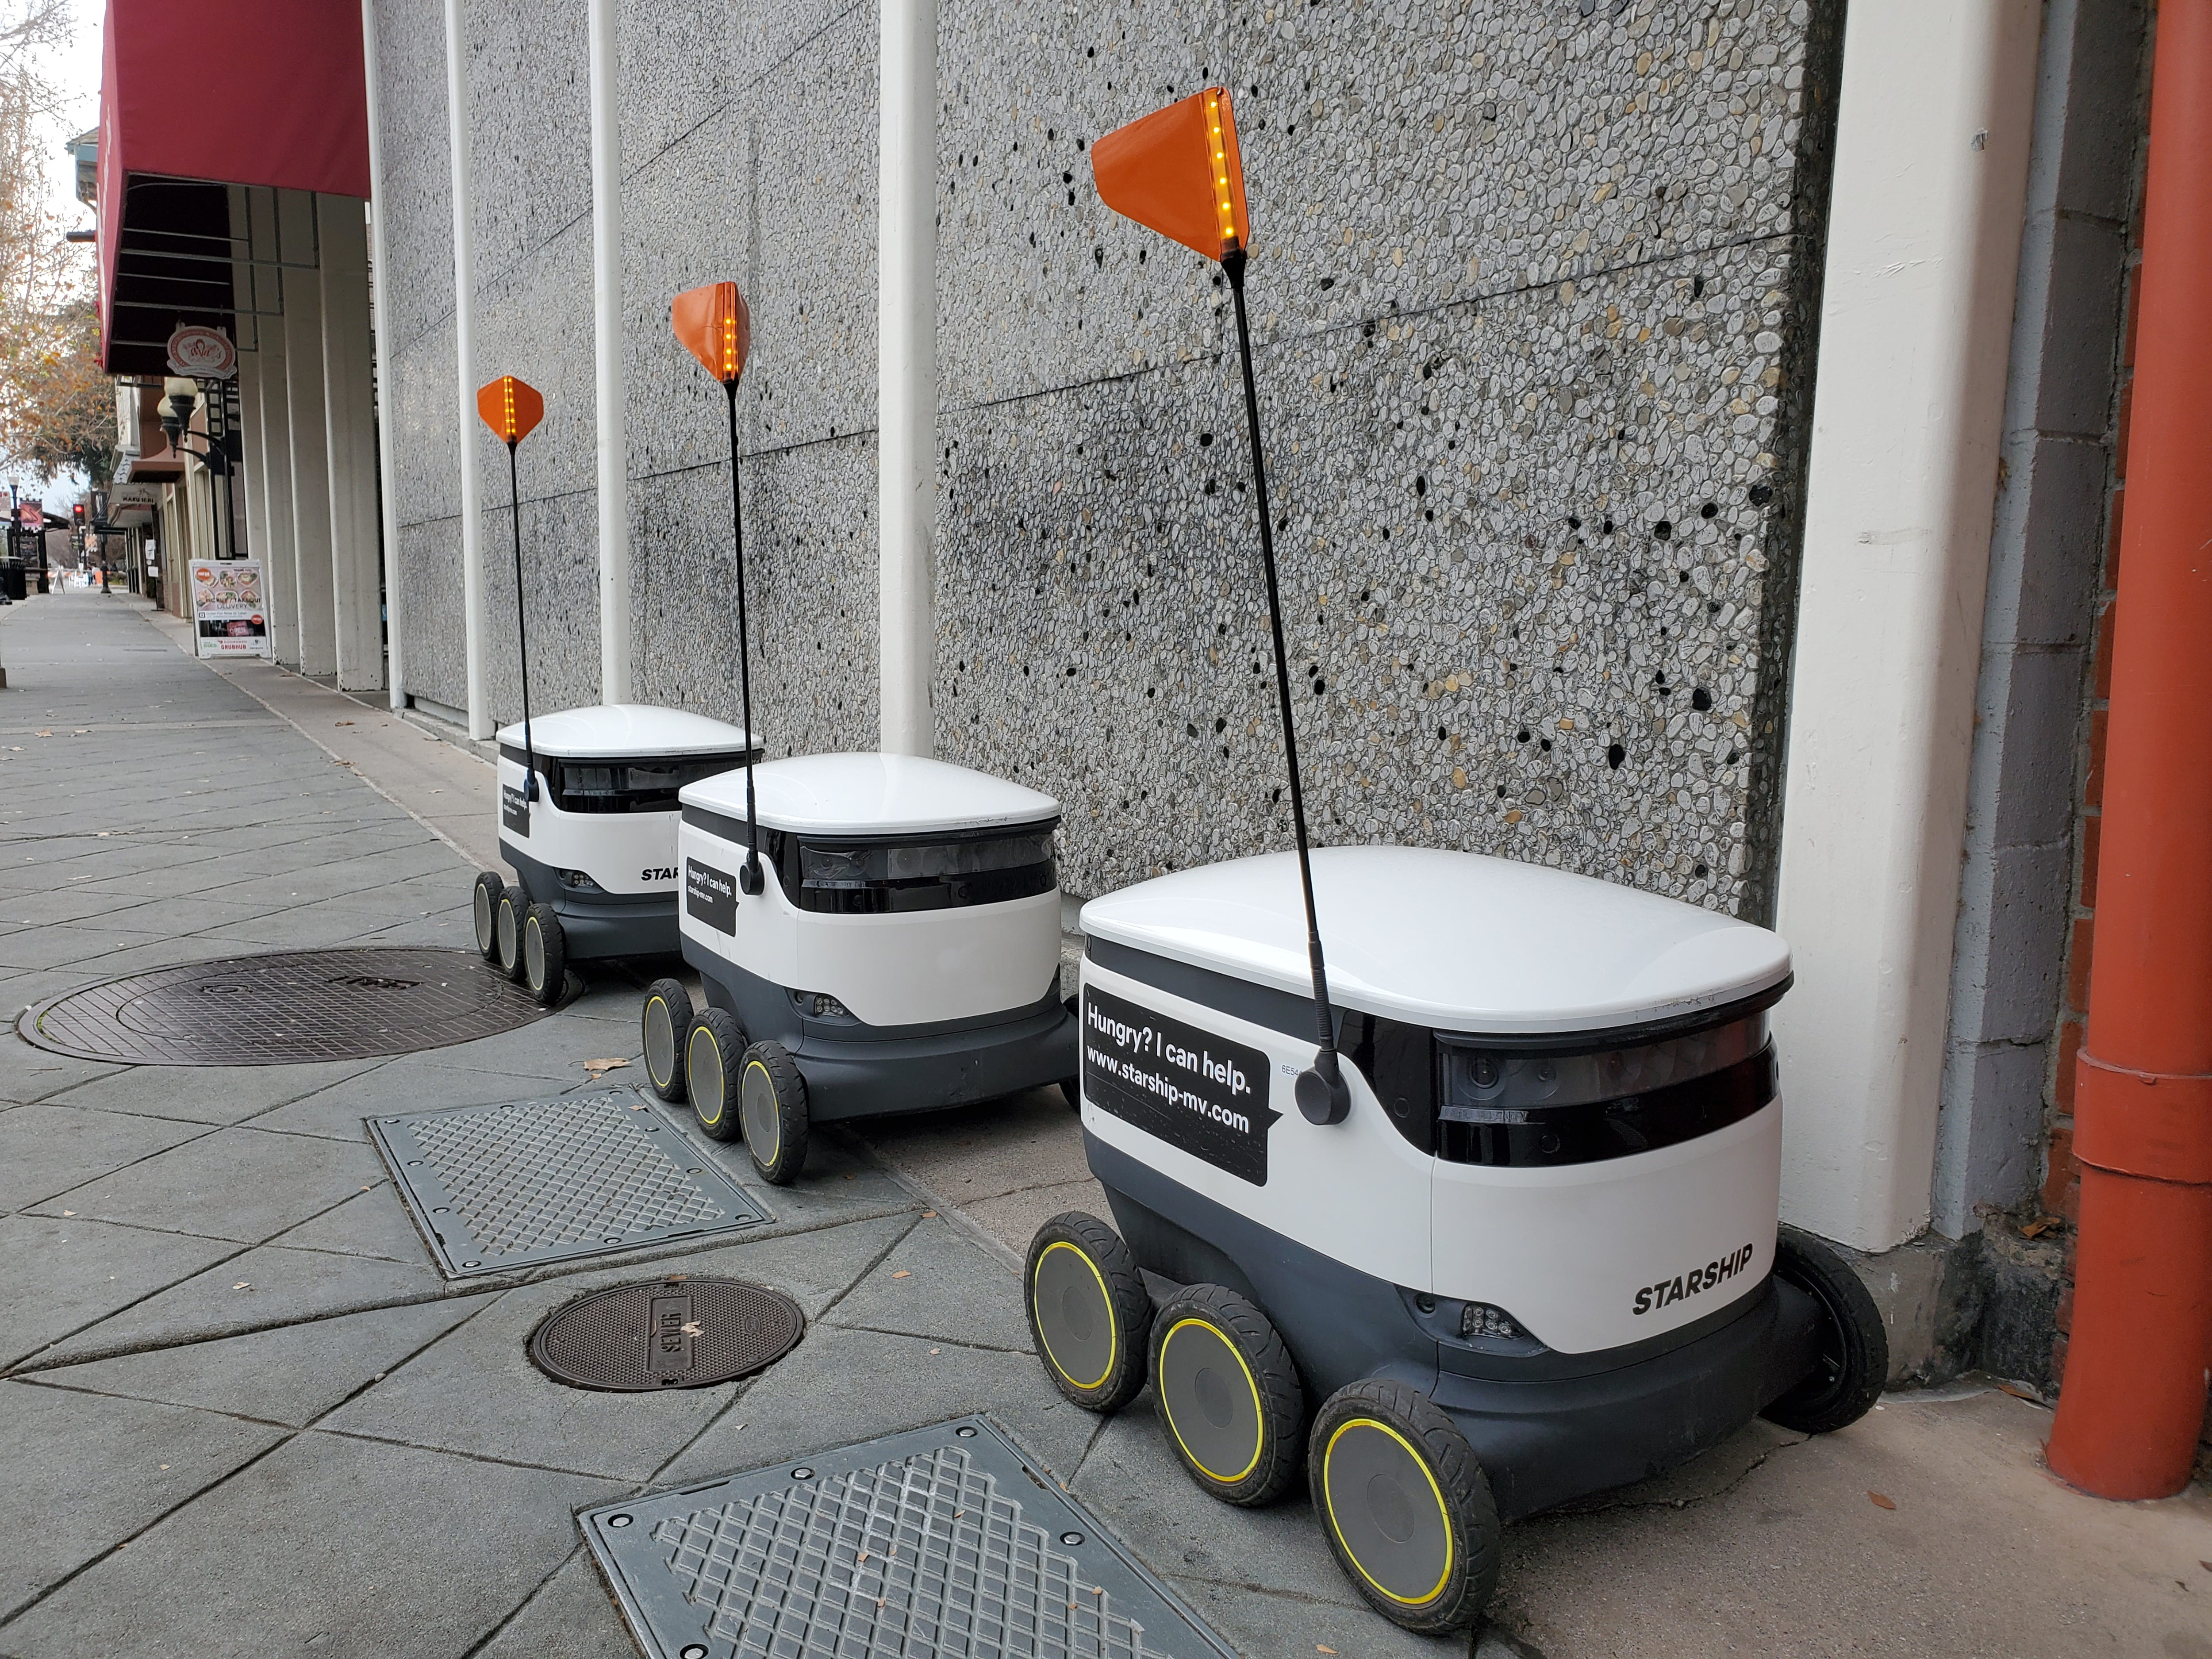 Starship self-driving delivery robots